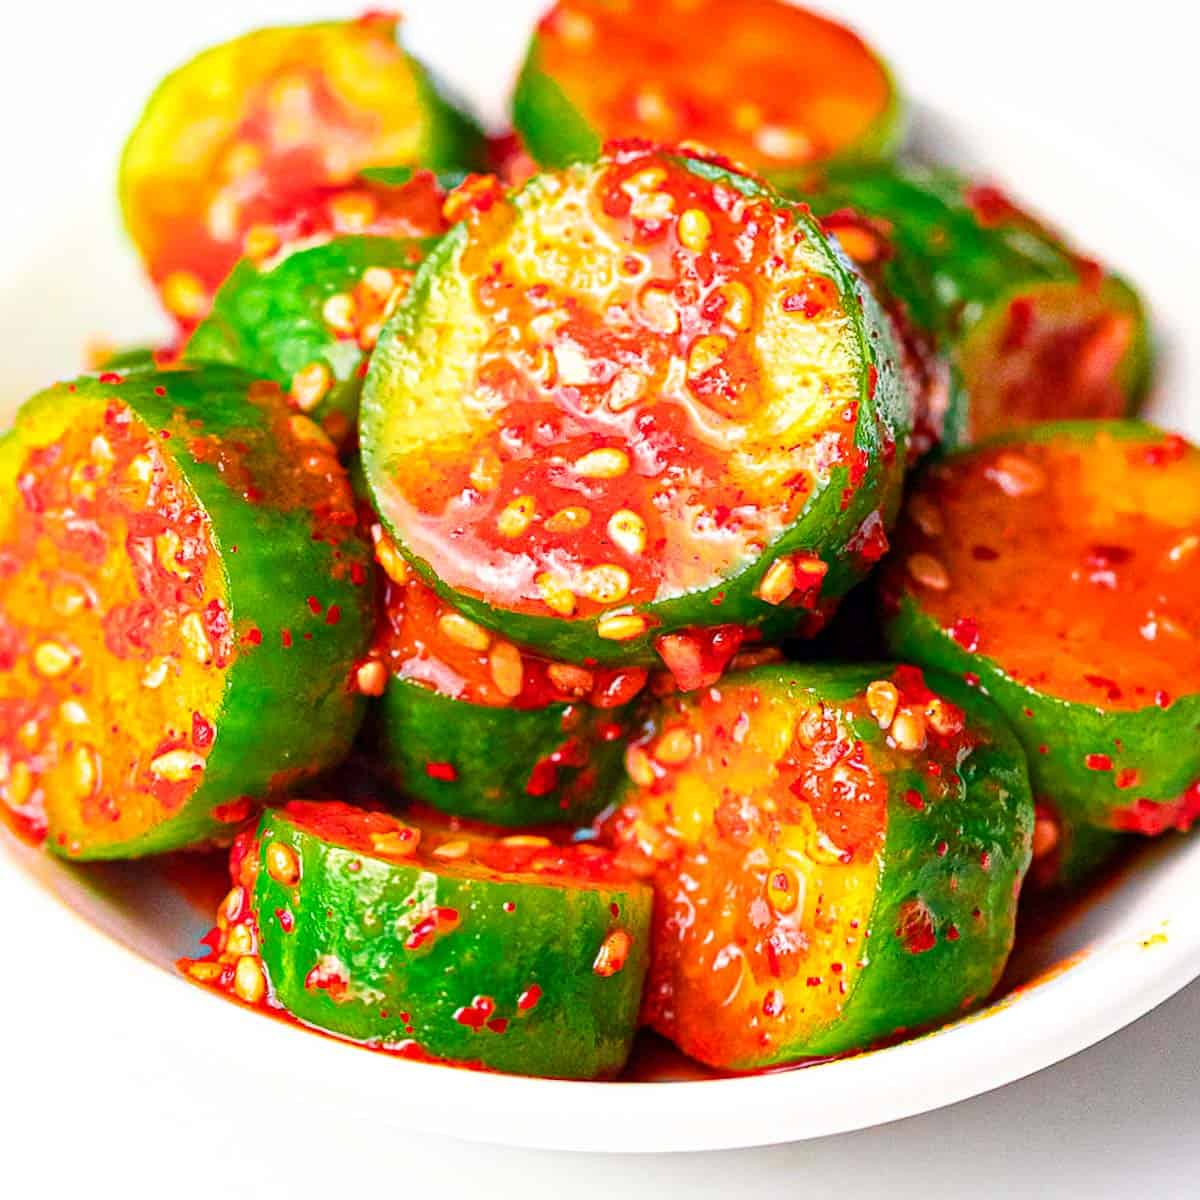 spicy Korean cucumber salad (Oi Muchim) with sesame seeds on a white plate